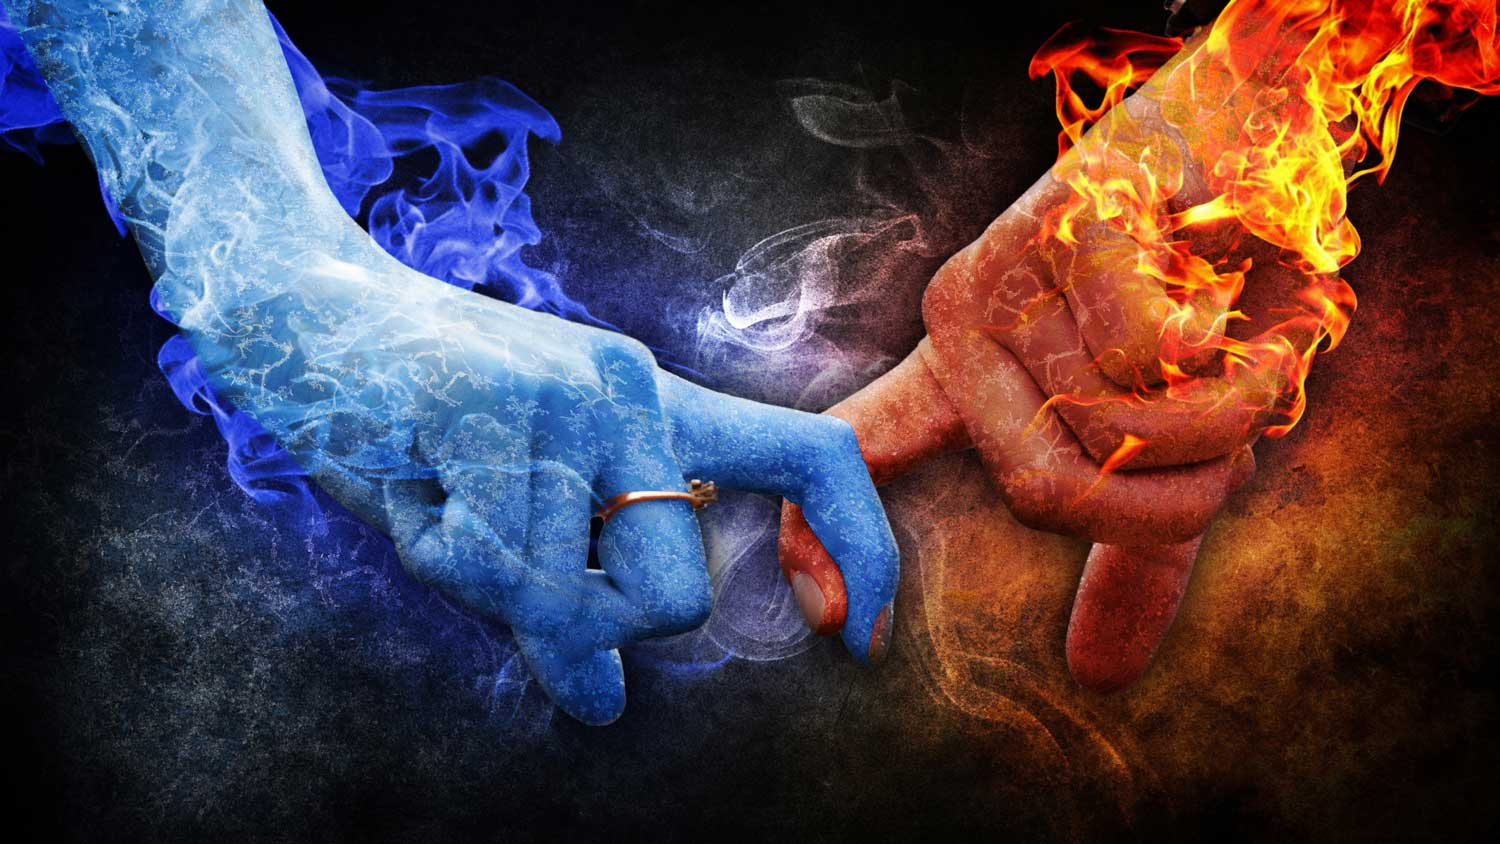 twin flame, twin flame stages, twin flame signs, what is a twin flame, difference between twin flame and soulmate